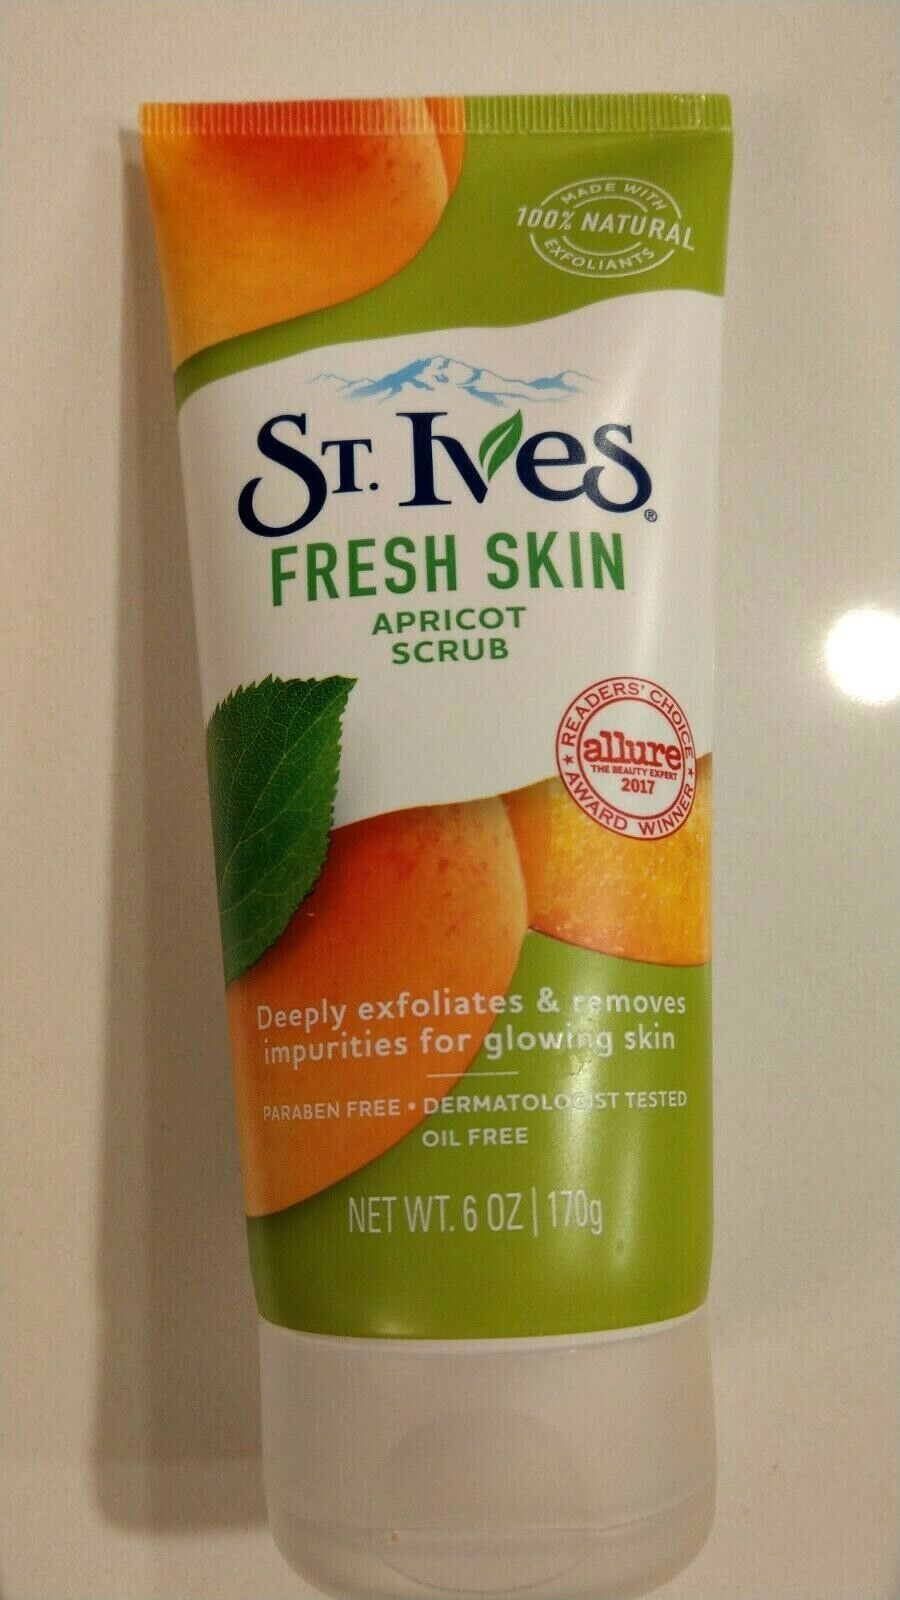 NEW St Ives Fresh Skin, Apricot Facial Scrub, 6 Oz, Dermatologist Tested - $3.95